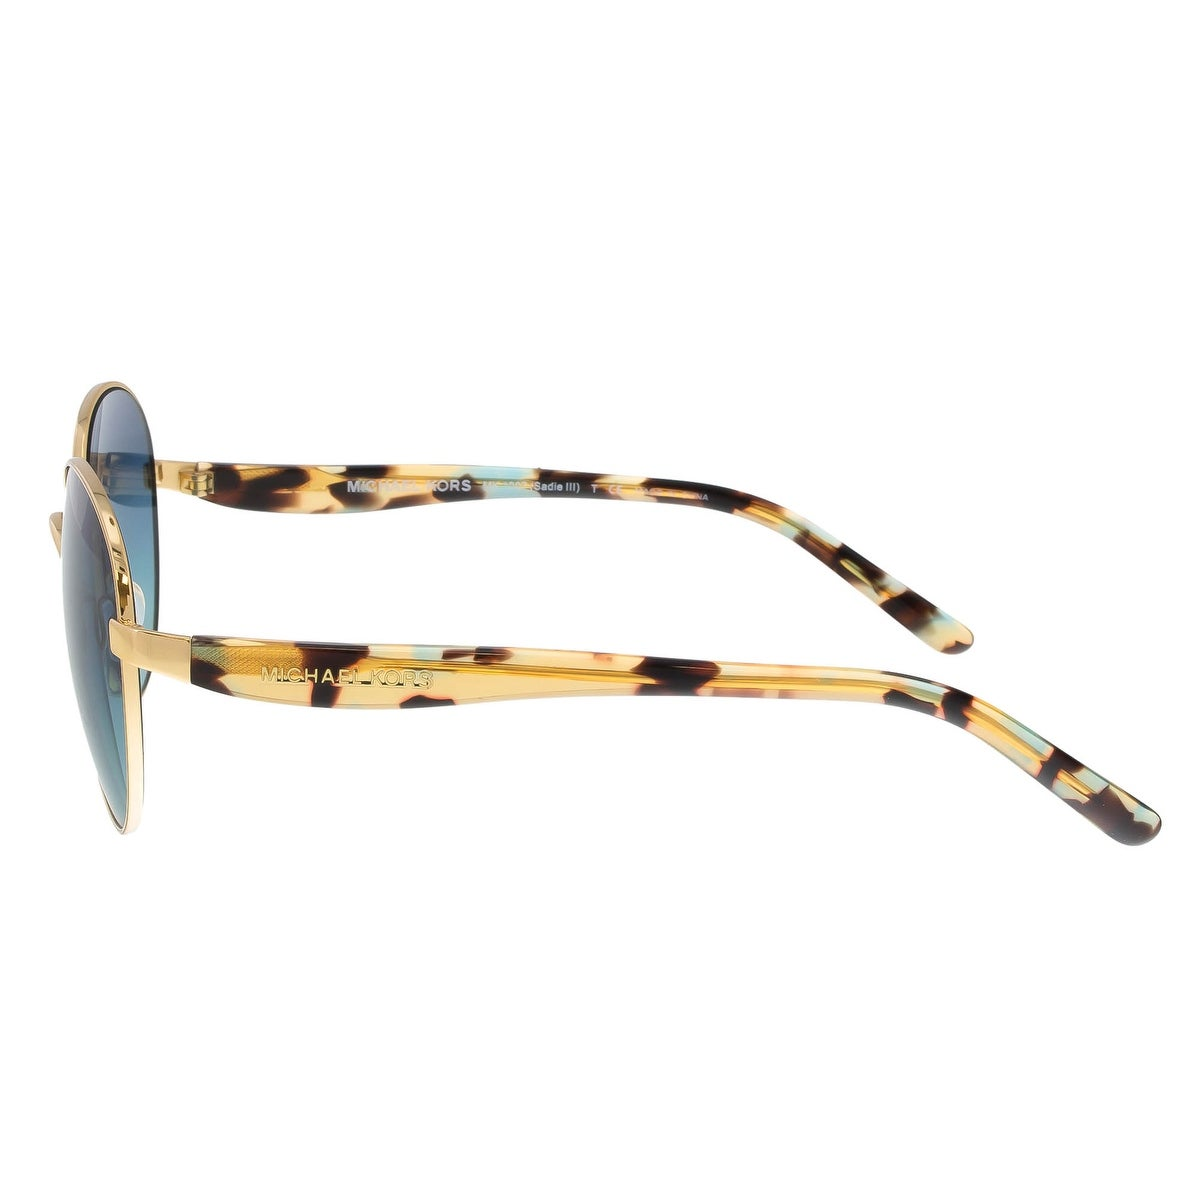 07e482d49e4af Shop Michael Kors MK1007 10934S Sadie III Gold Havana Round Sunglasses - 52- 19-135 - Free Shipping Today - Overstock - 19518834